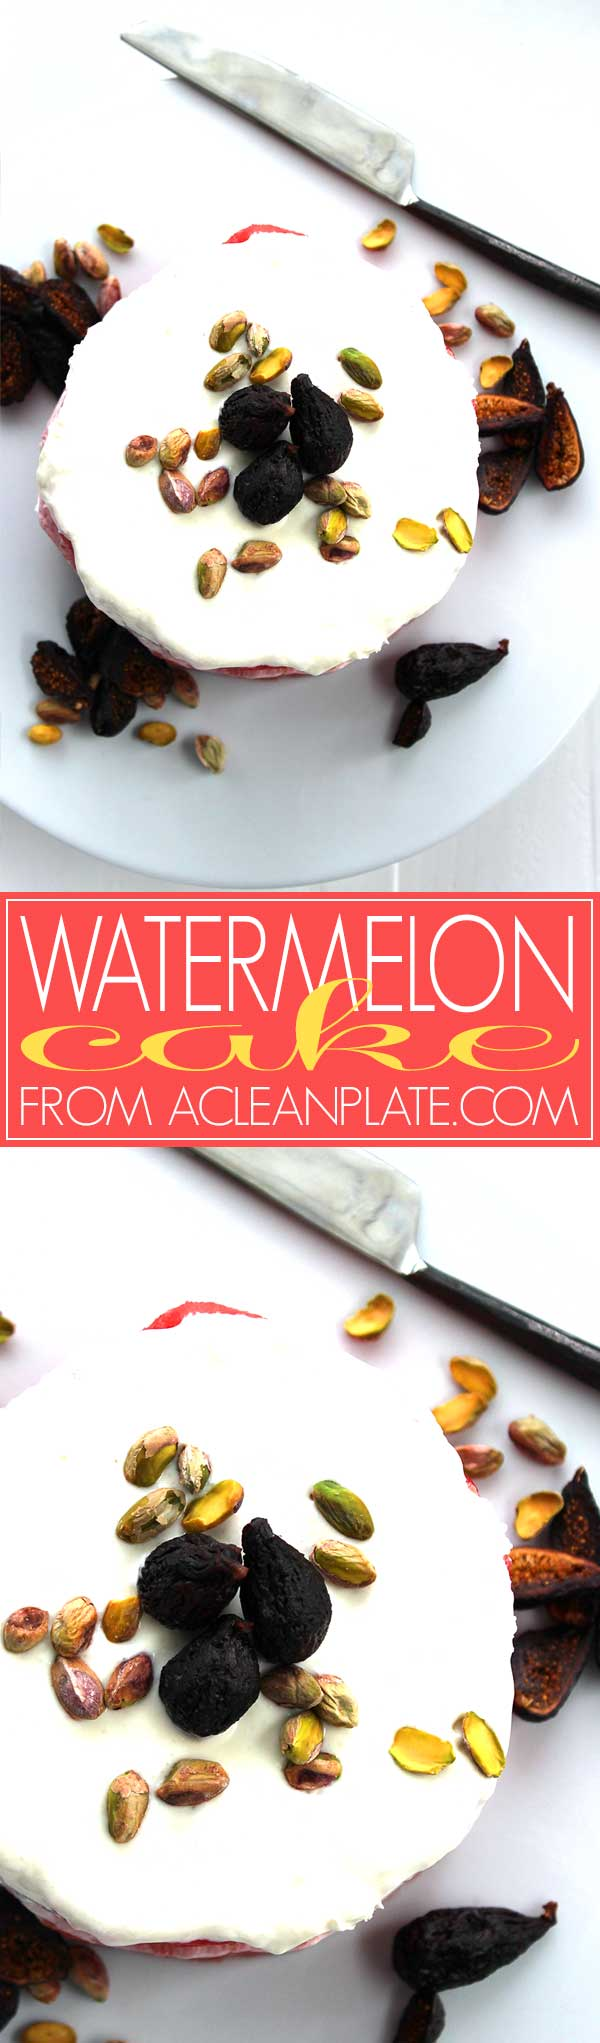 Beautiful, healthy Watermelon Cake recipe from acleanplate.com